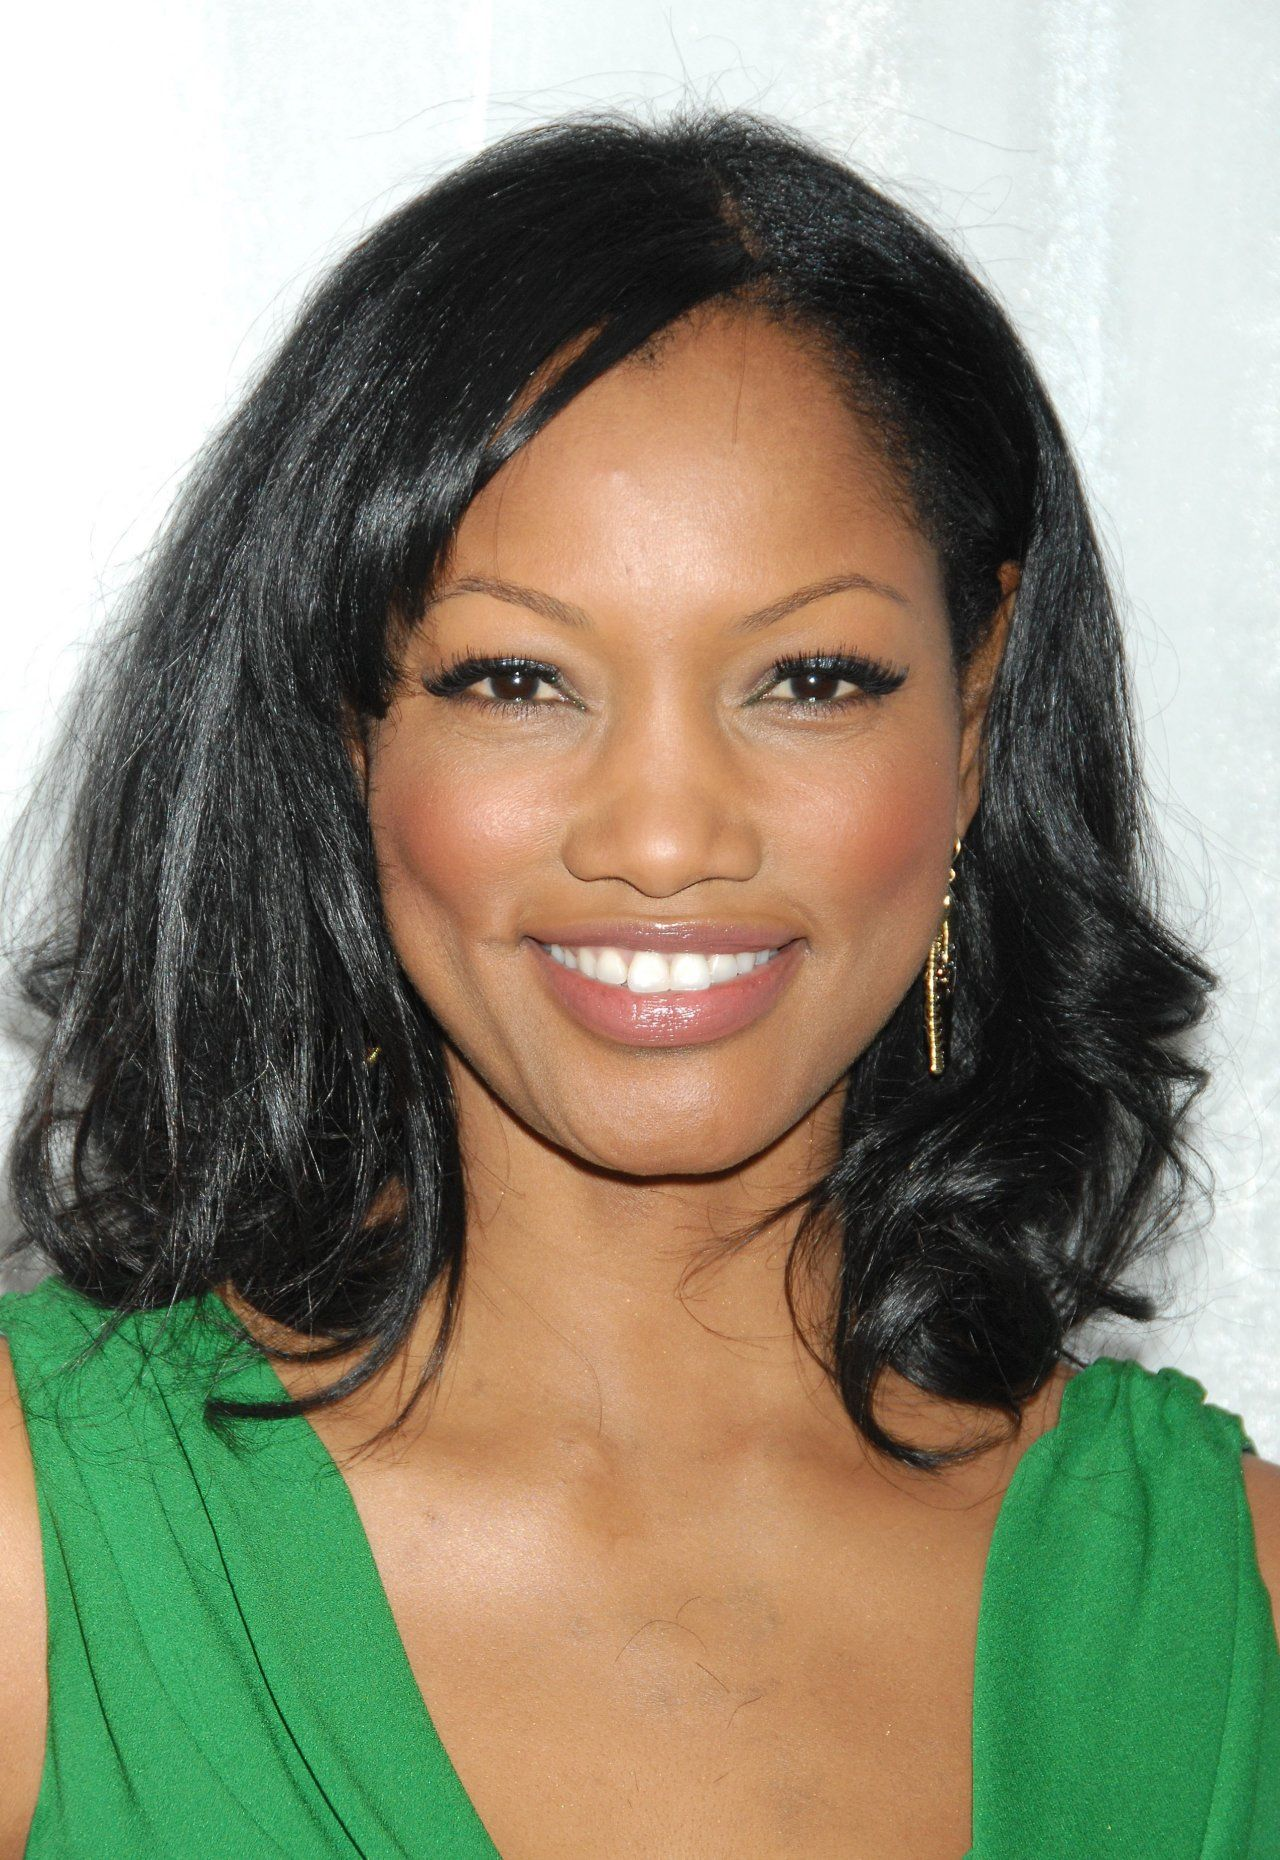 franklin bash garcelle beauvais als hanna linden tv series franklin bash garcelle beauvais als hanna linden